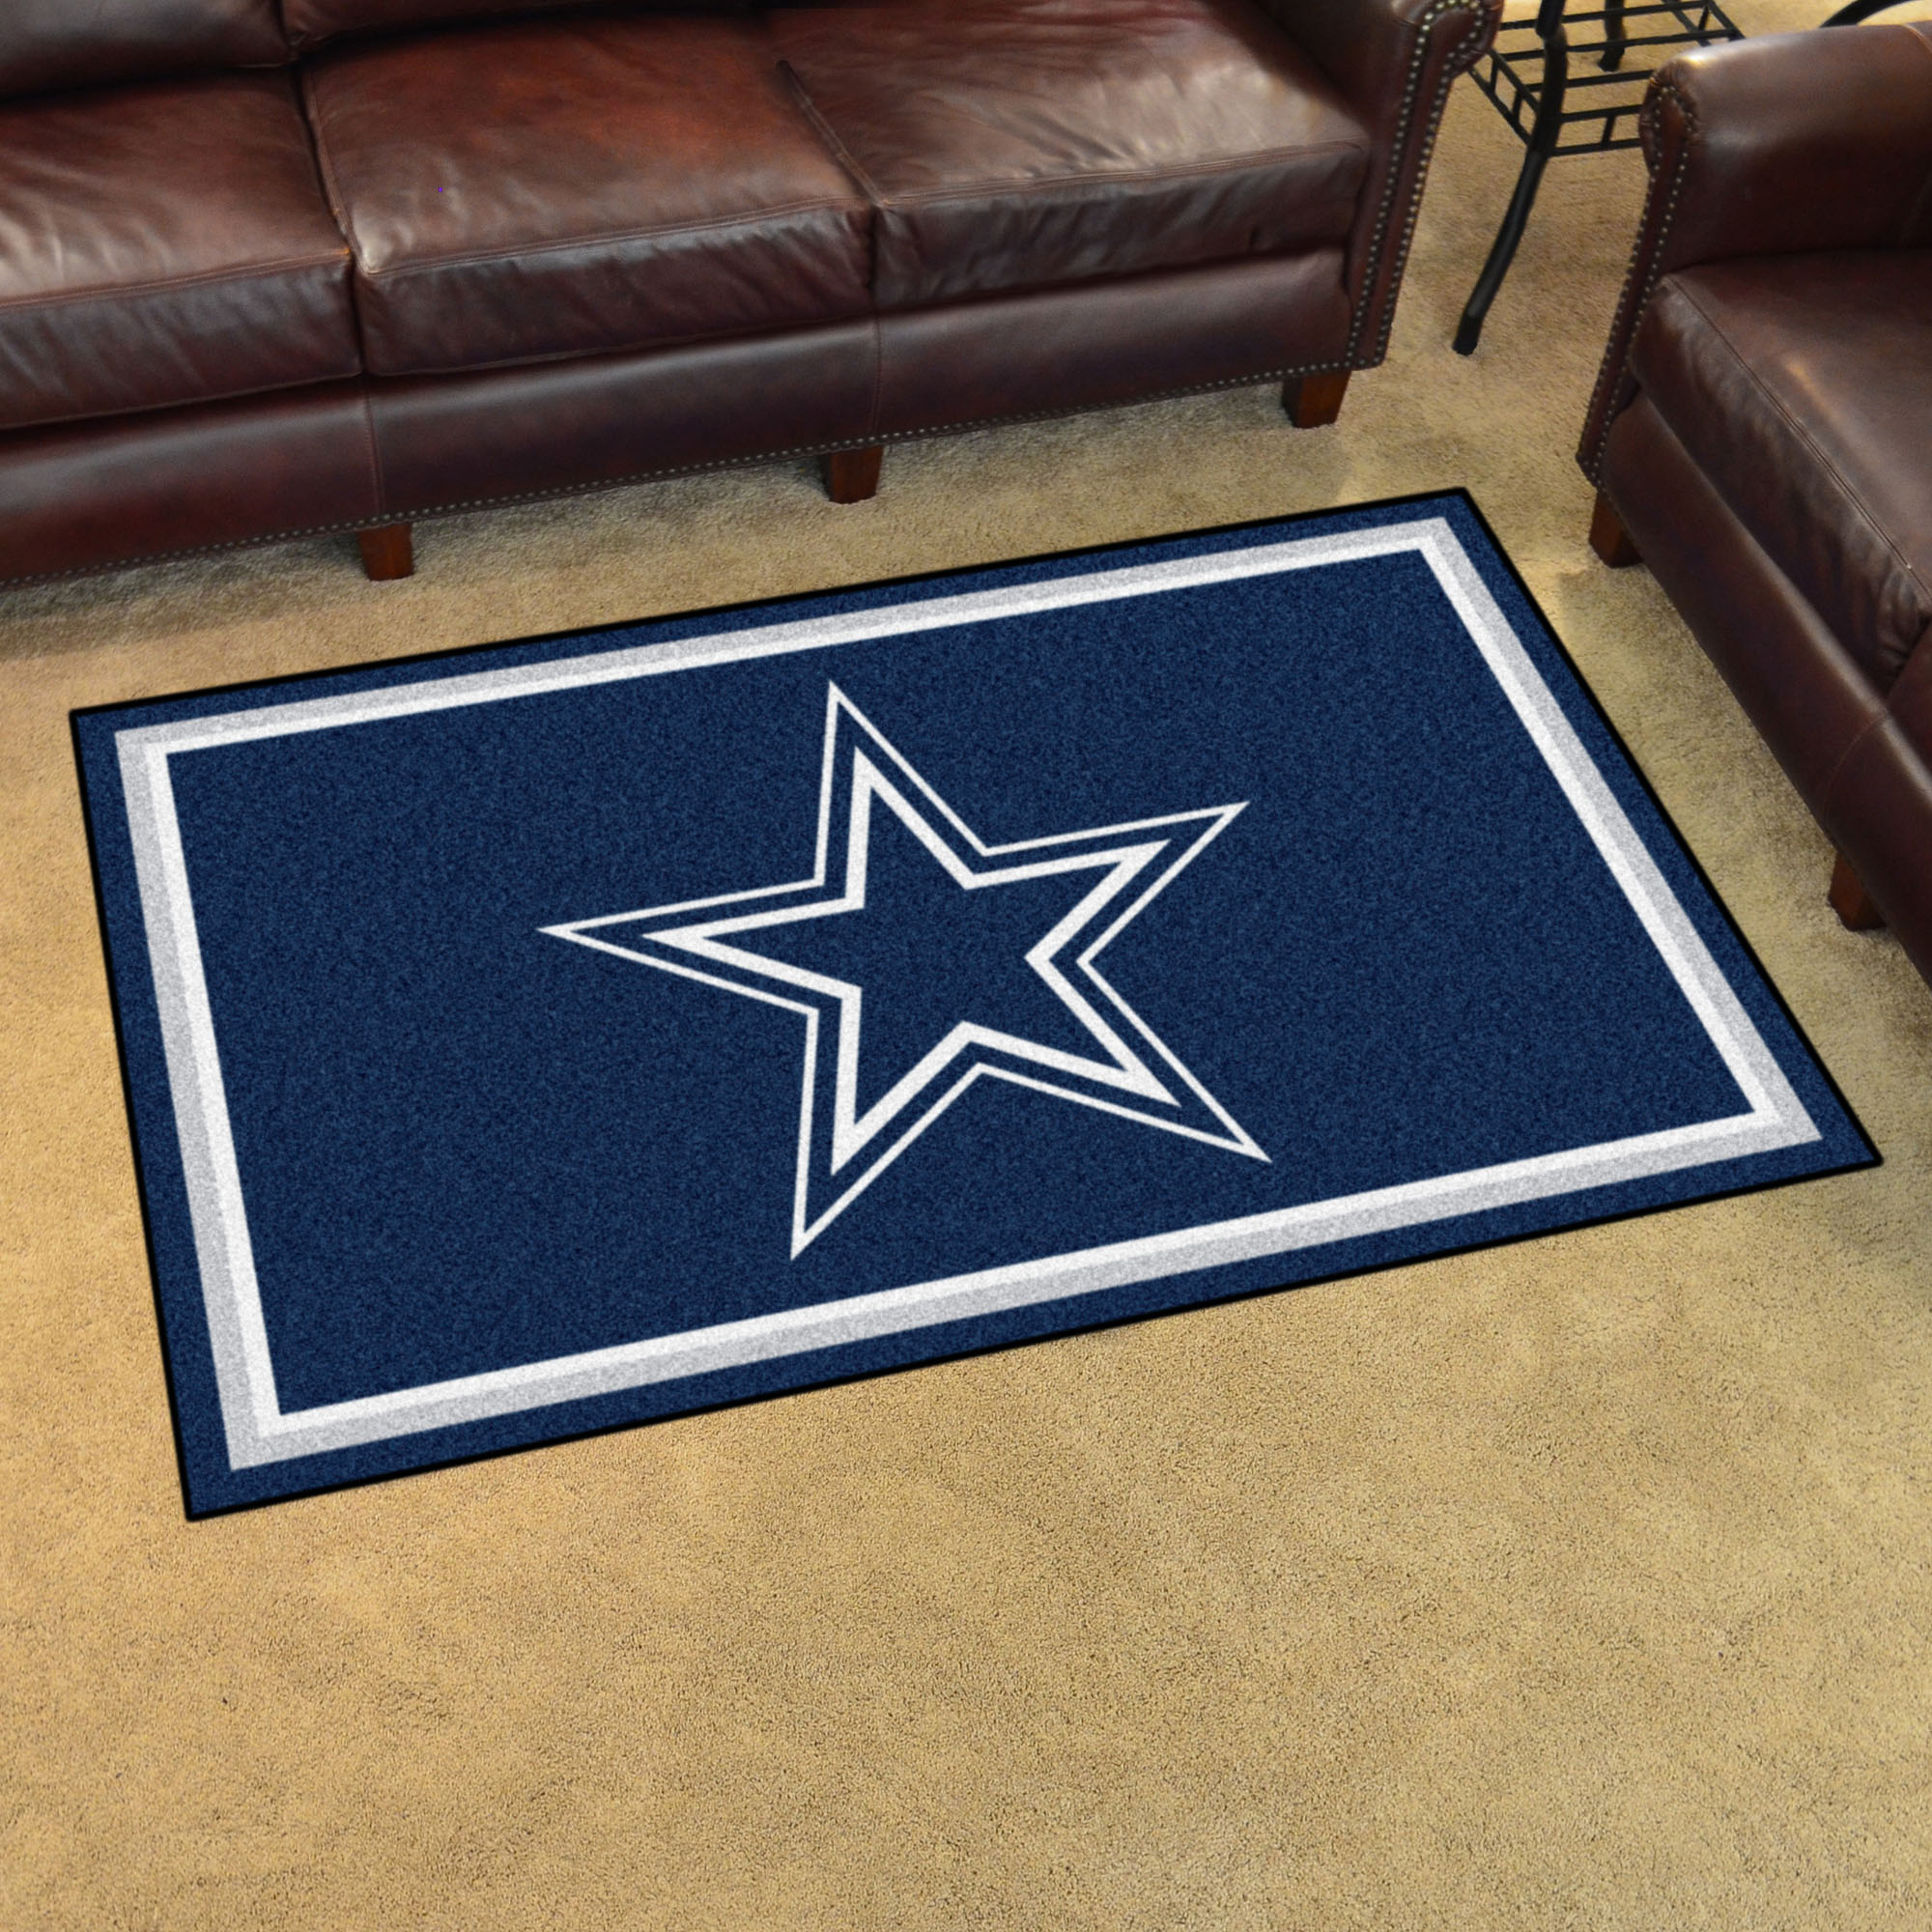 Dallas Cowboys 4x6 Area Rug Buy At Khc Sports